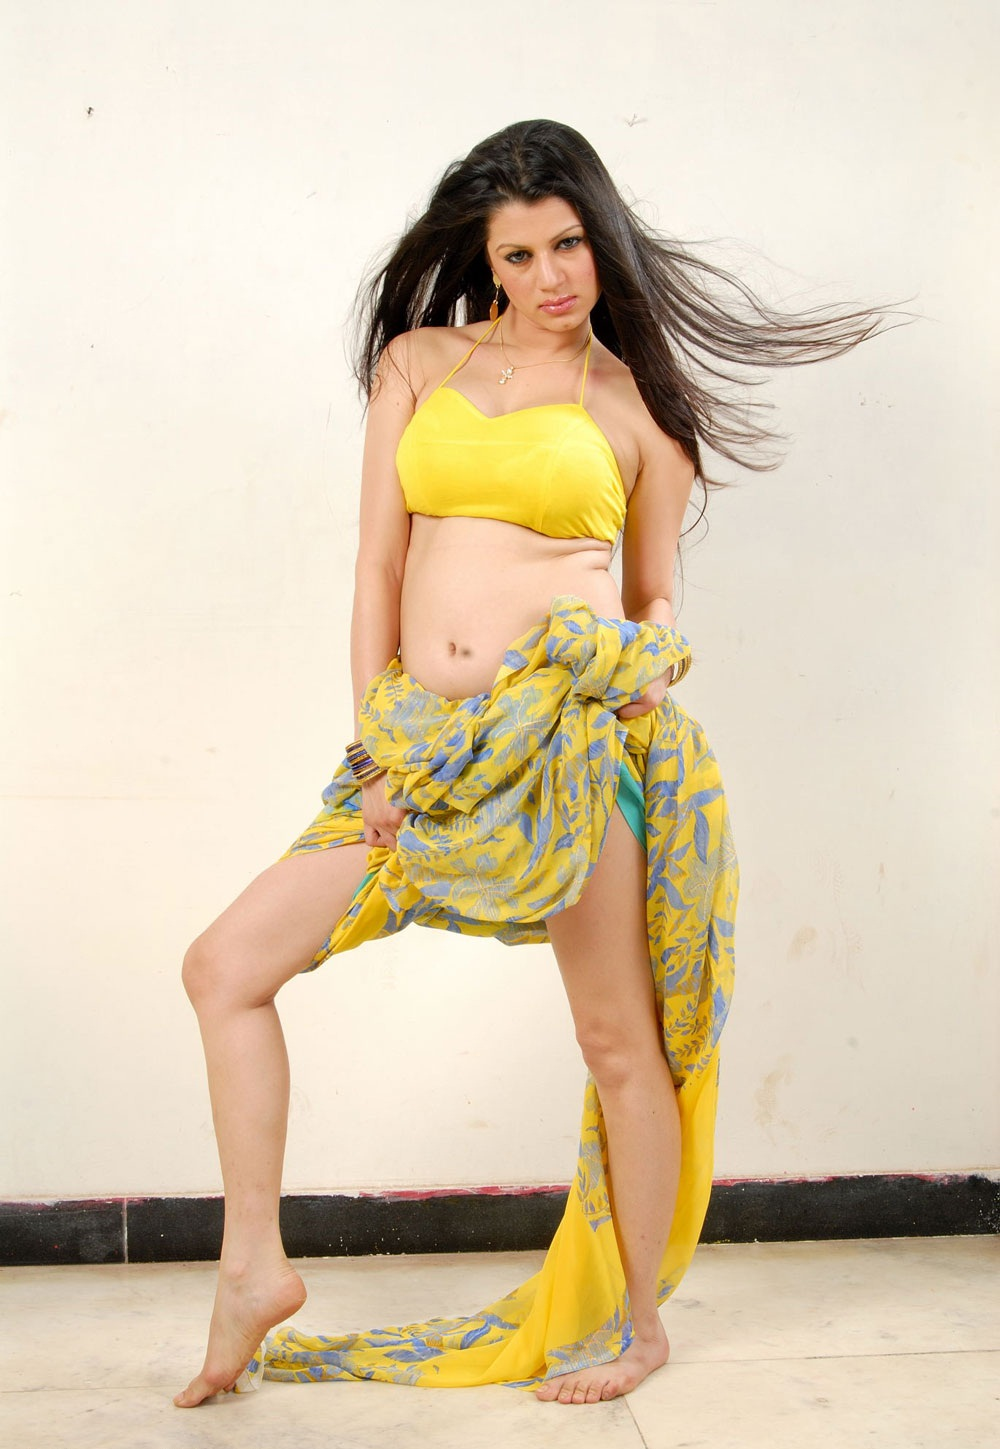 Spicy hot indian tv anchor cricket show - 2 4